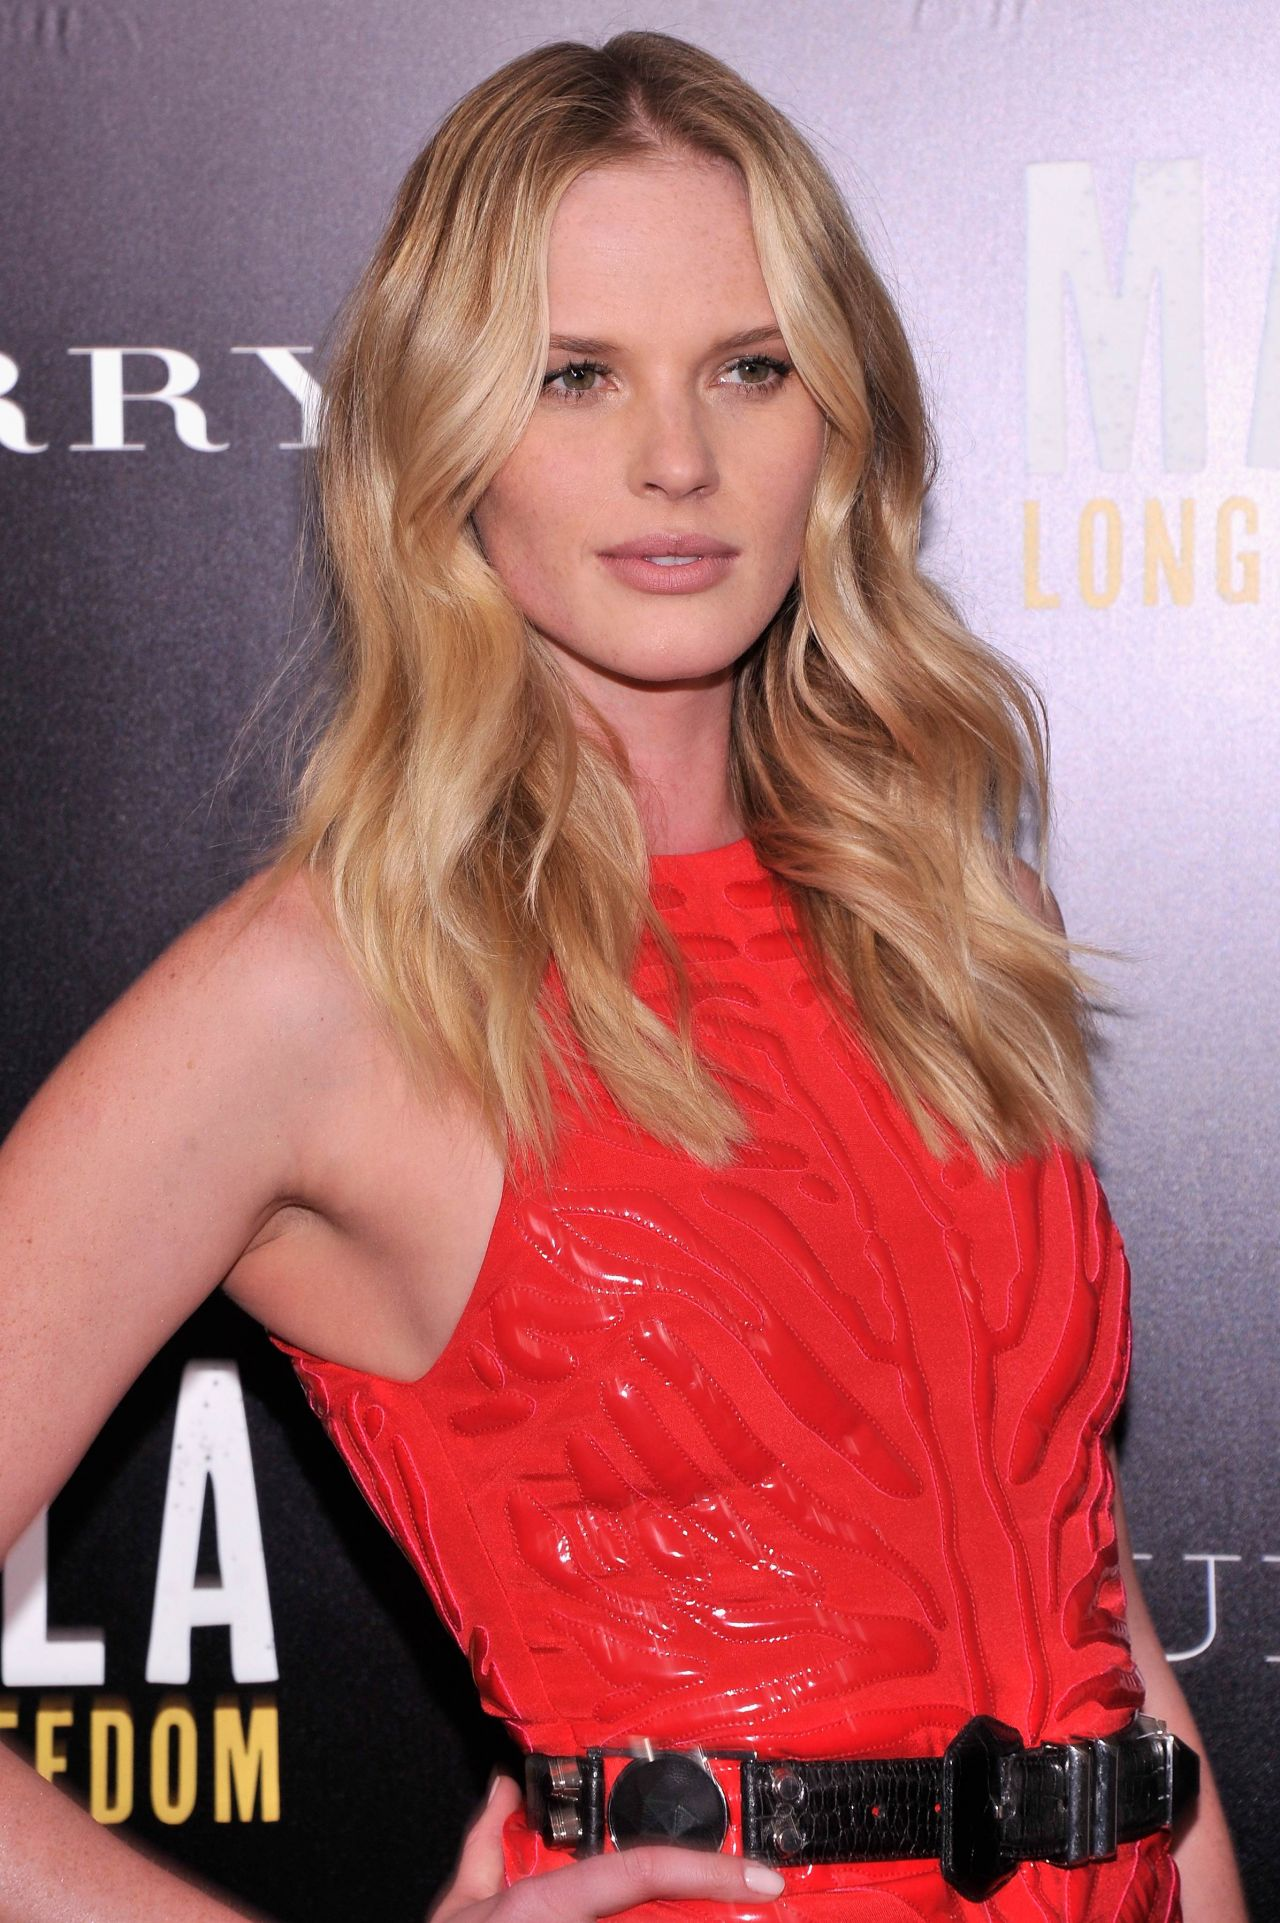 Anne Vyalitsyna on Red Carpet - MANDELA: LONG WALK TO FREEDOM Screening in New York City